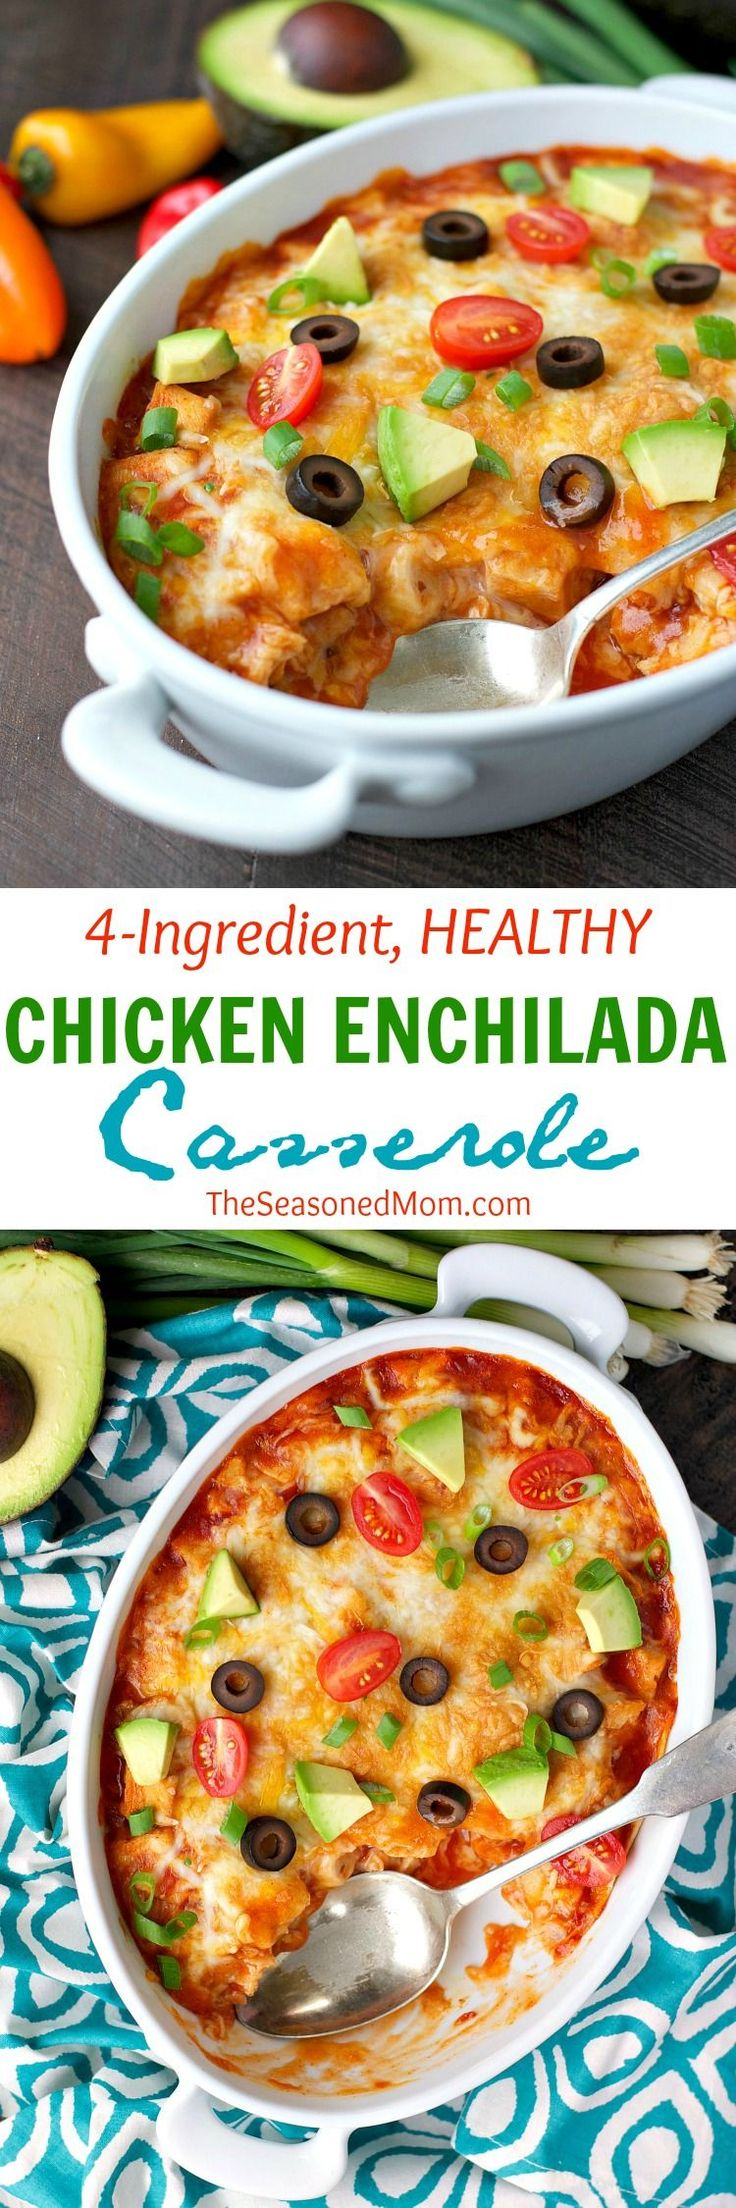 With just four basic ingredients you can have a Healthy Chicken Enchilada Casserole ready to go in the oven -- with only 5 minutes of prep time! Easy, nutritious, and family-friendly weeknight dinners don't get any faster than this!